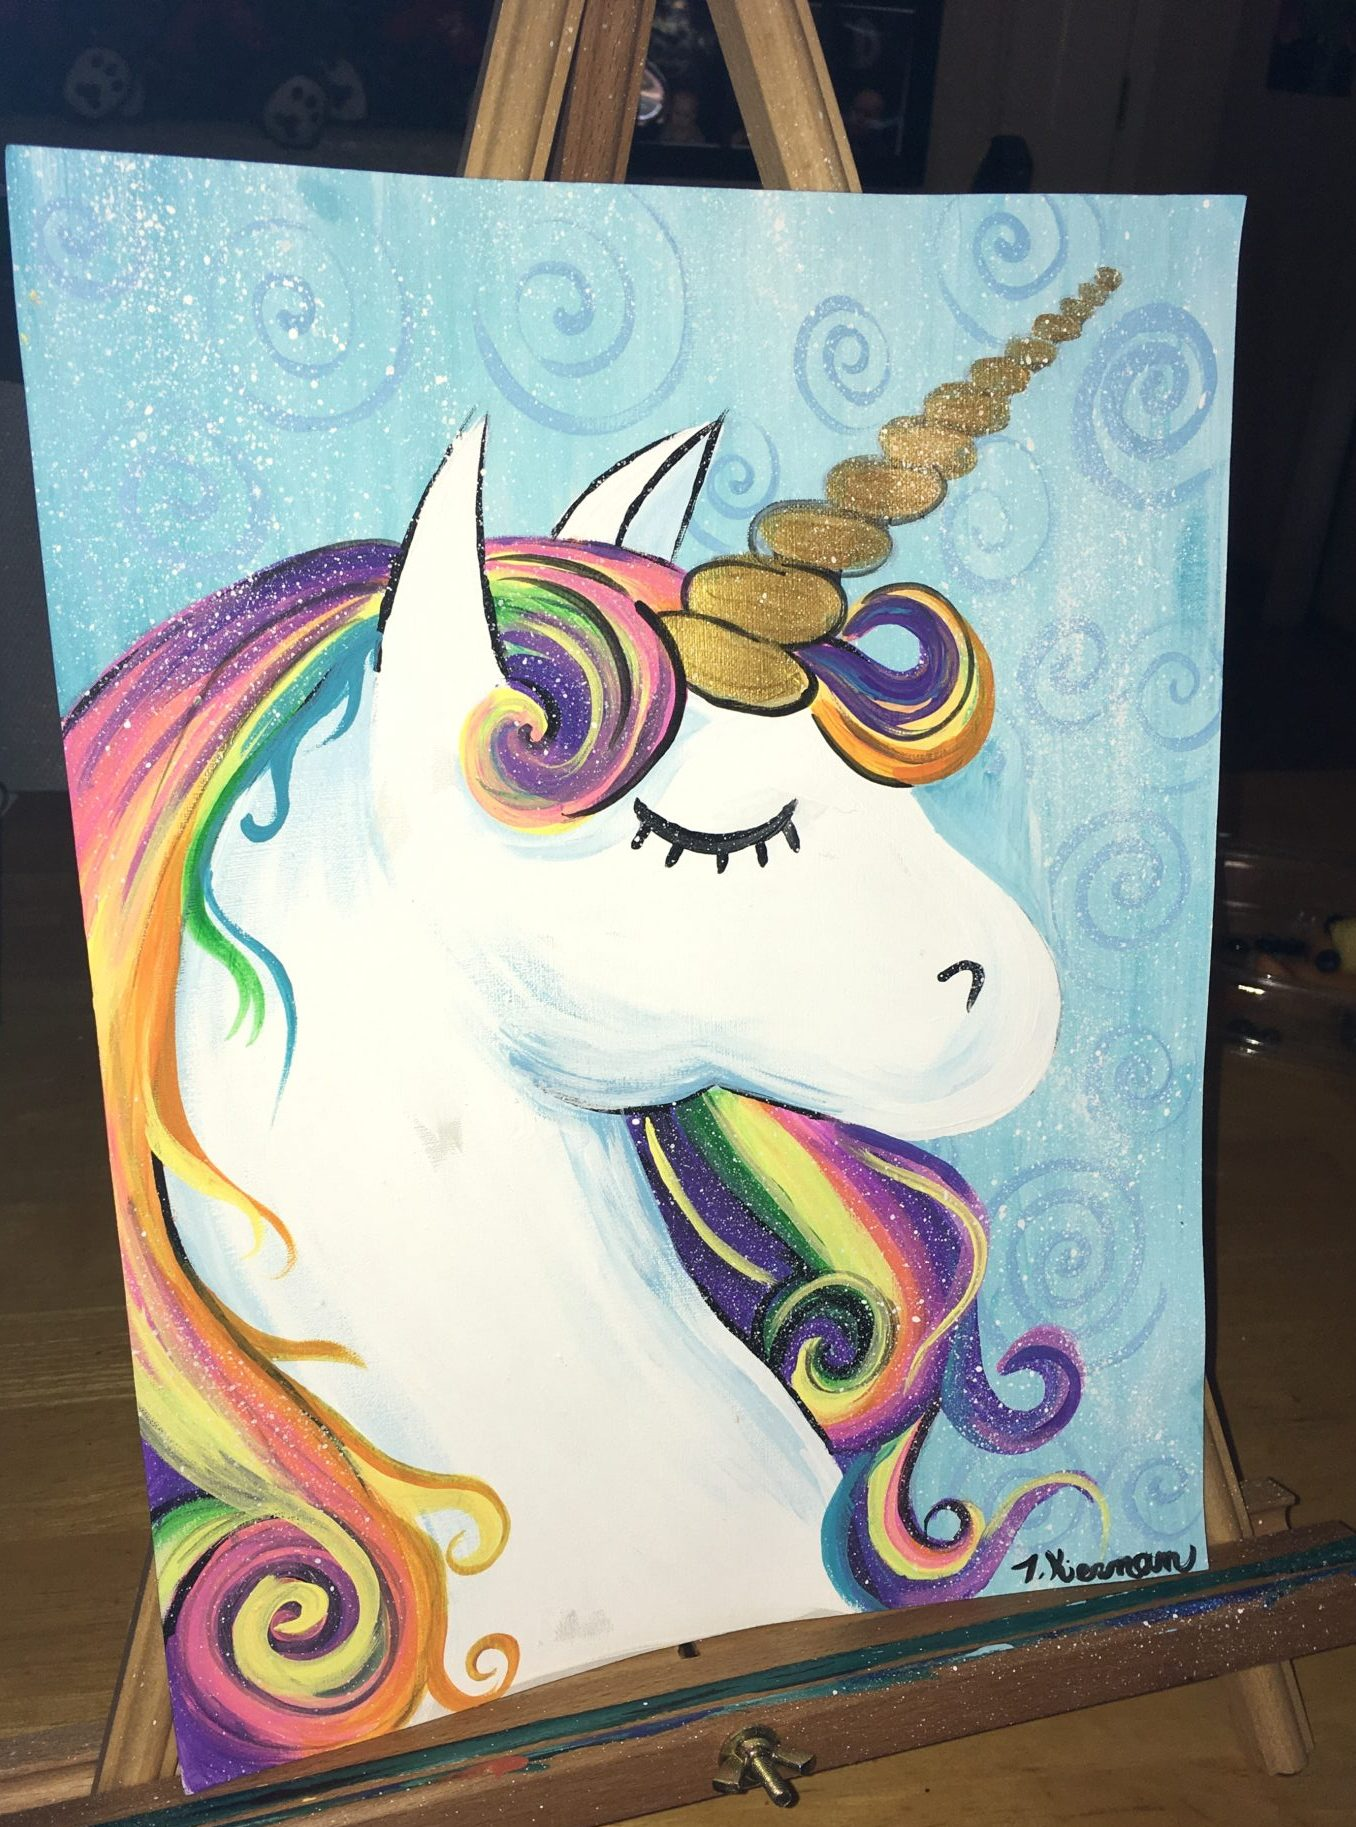 How To Paint A Rainbow Unicorn - Easy Step By Step Painting - photo#5